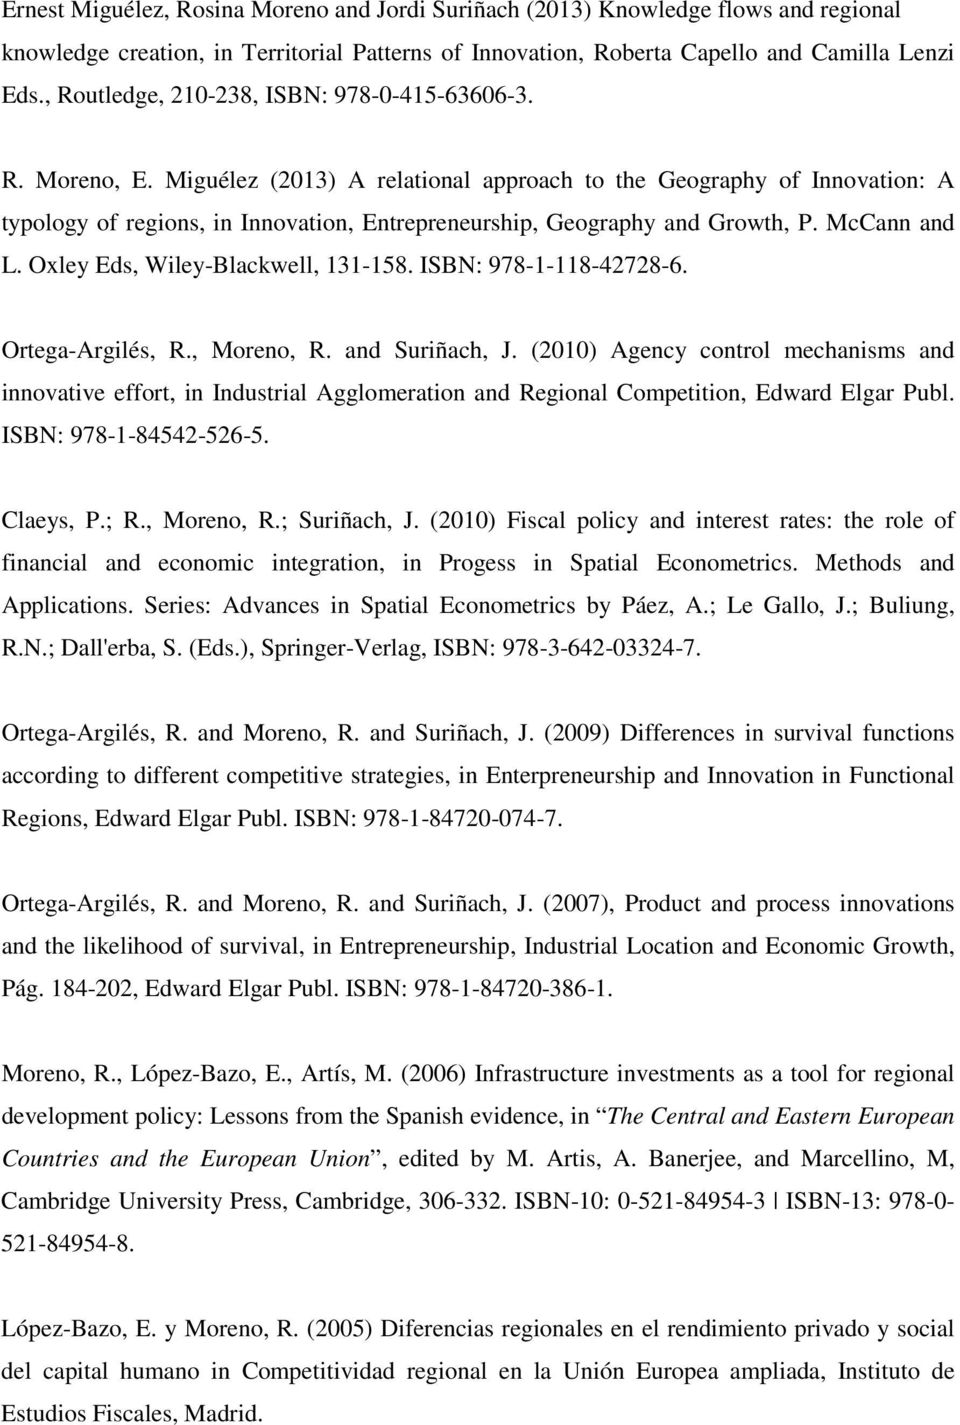 Miguélez (2013) A relational approach to the Geography of Innovation: A typology of regions, in Innovation, Entrepreneurship, Geography and Growth, P. McCann and L.